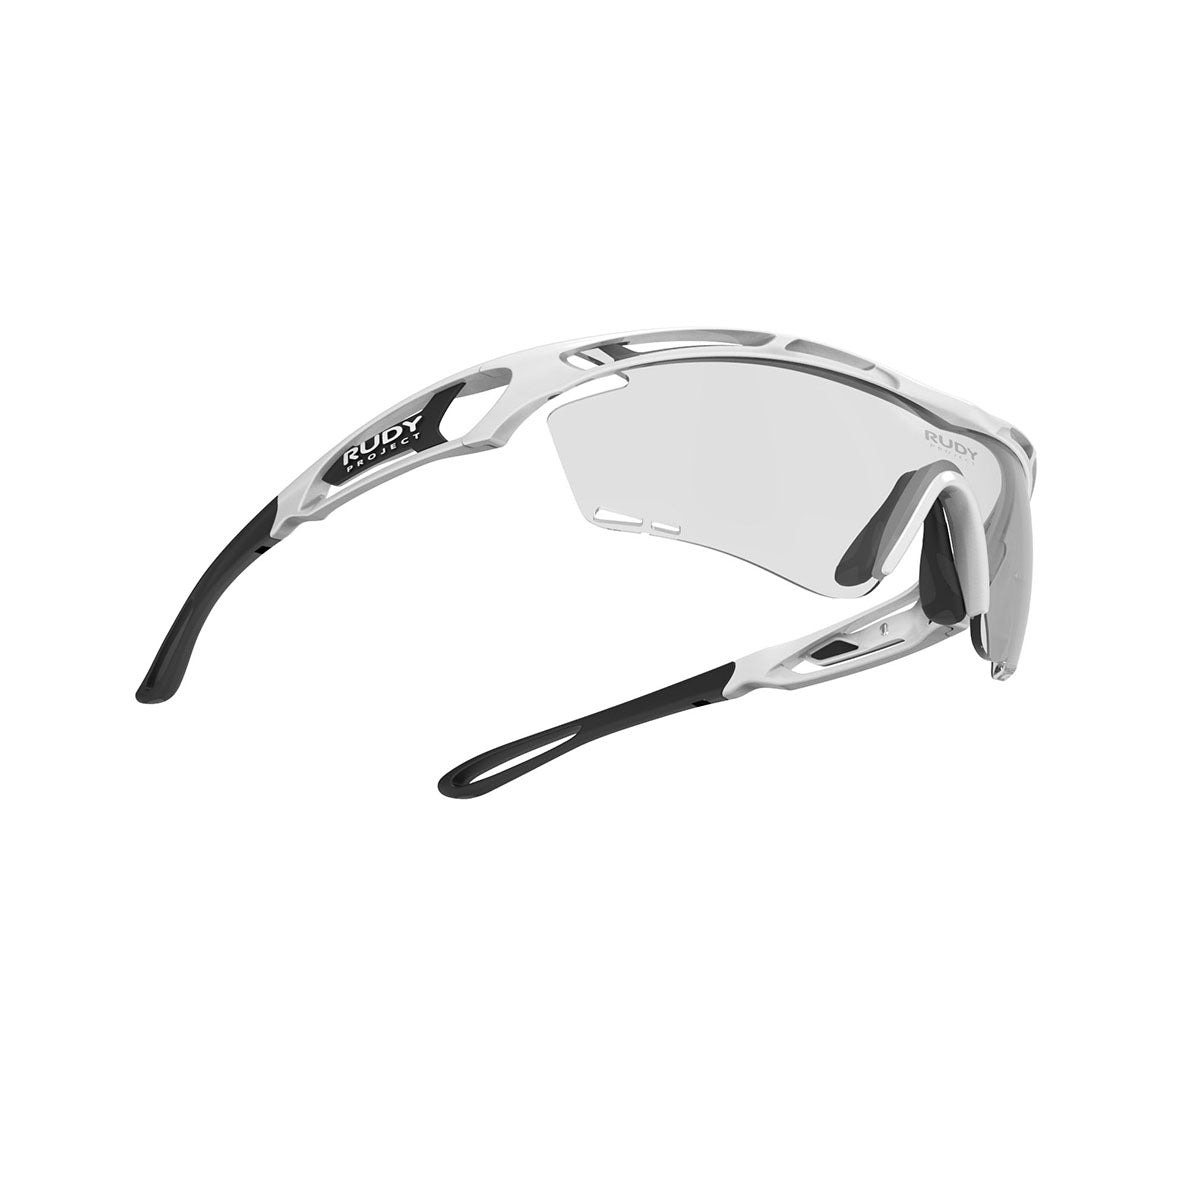 Rudy Project - Tralyx - frame color: White Gloss - lens color: ImpactX-2 Photochromic Clear to Black - photo angle: Bottom Front Angle Variant Hover Image